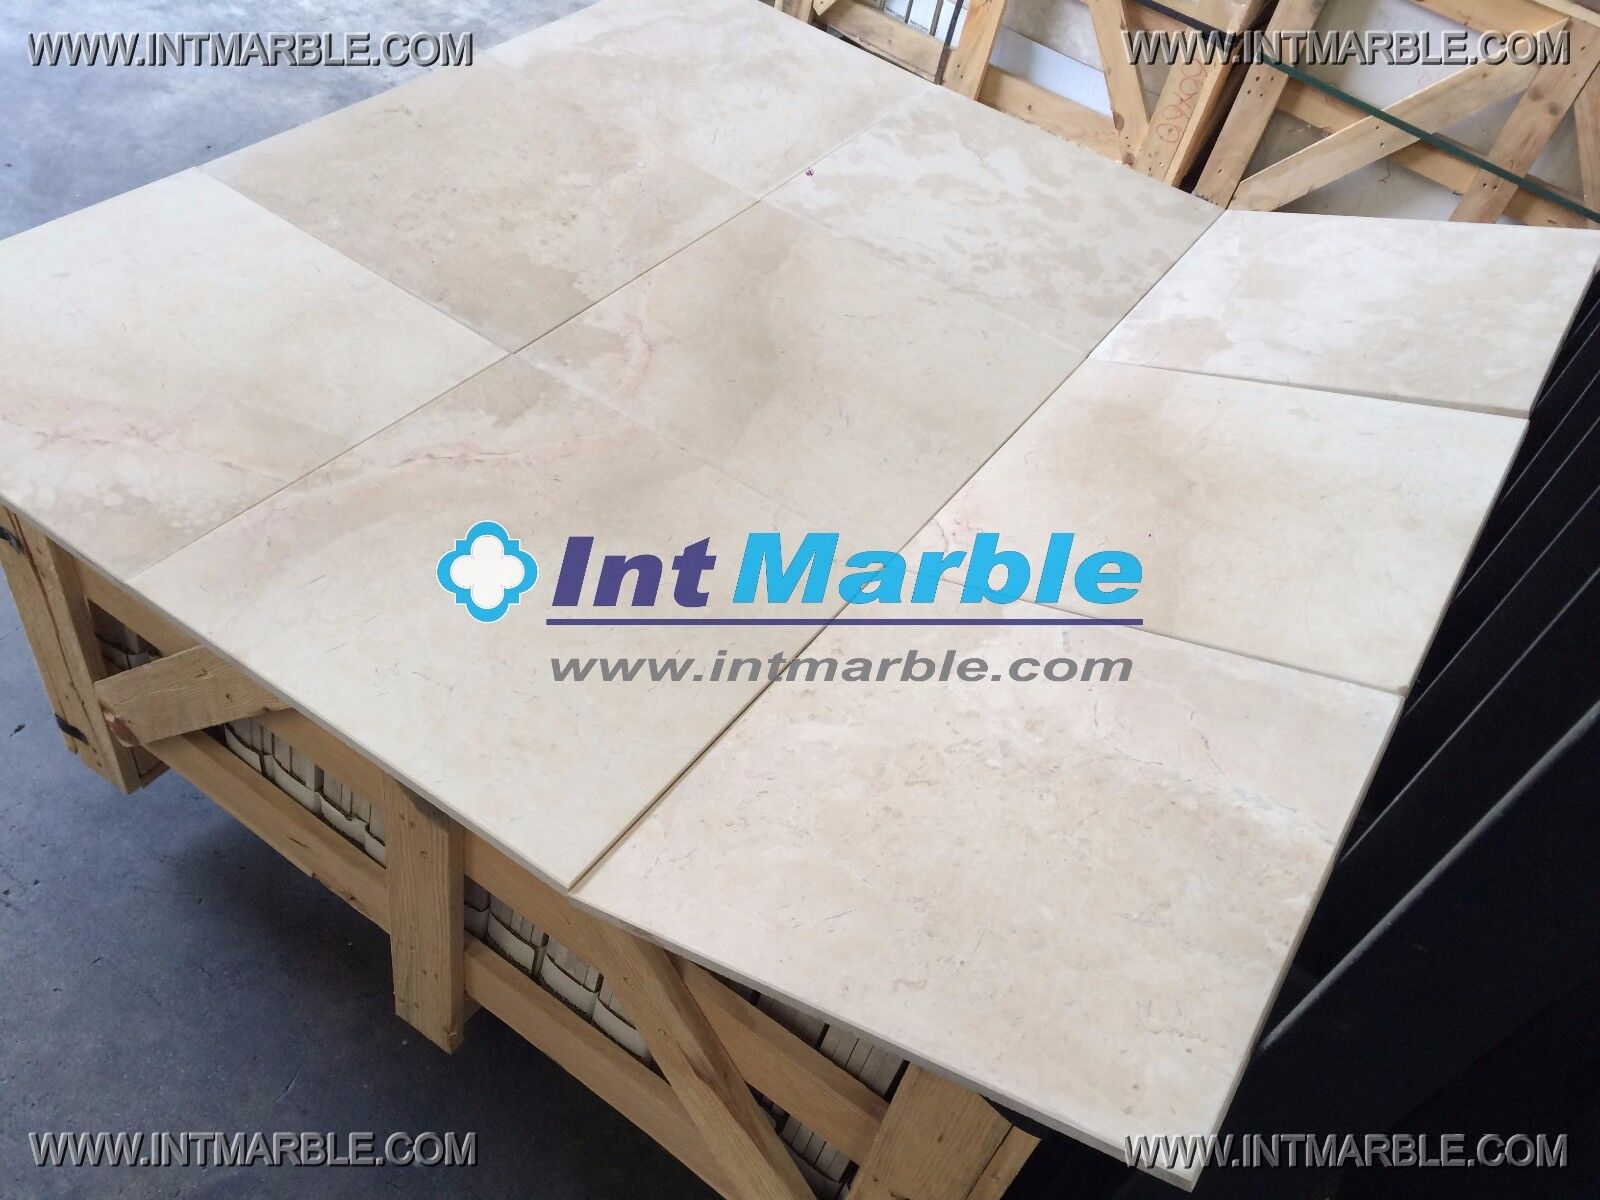 Marble Tiles, Crema Marfil Ivory Honed, Marble Floor   Wall Tiles, 406x406x12mm